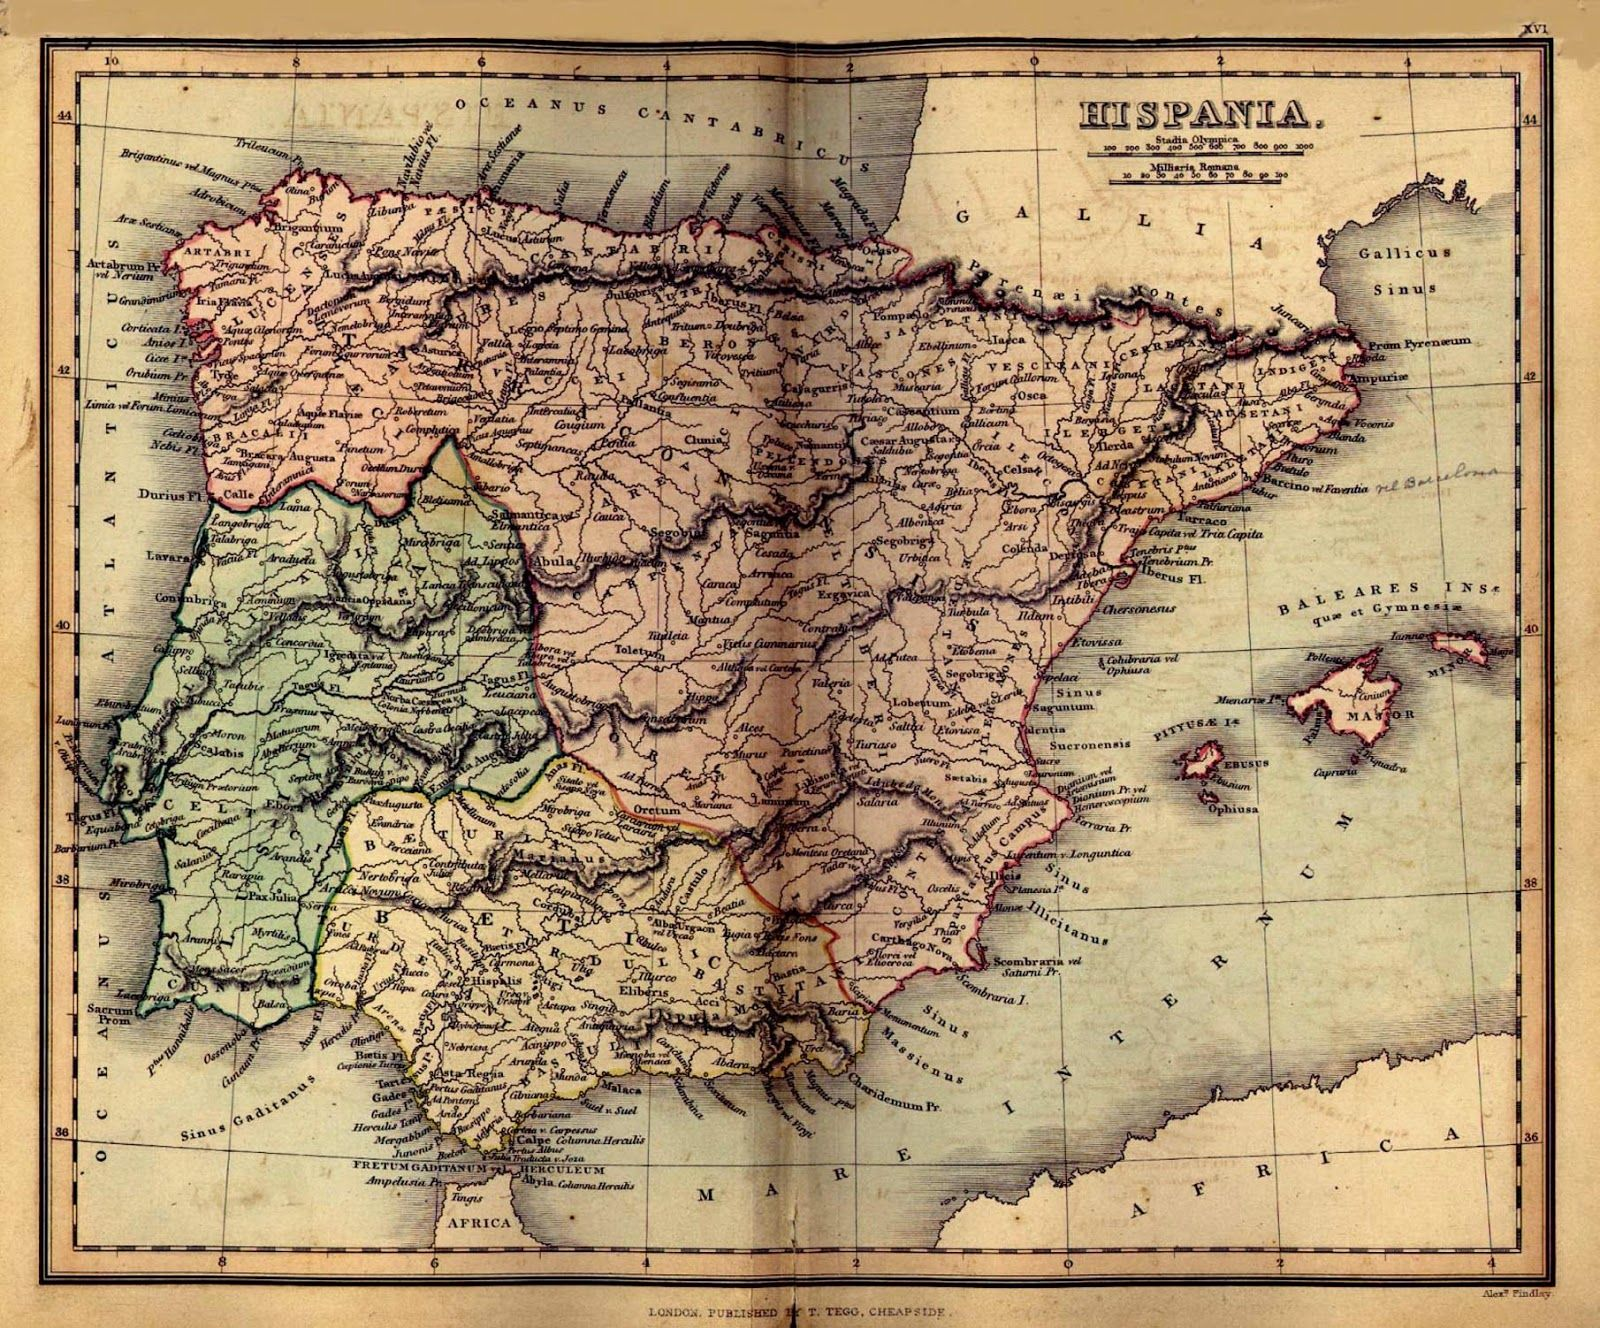 Free vintage old maps ancient hispania 1849 free ancient map explore spain history ancient map and more free vintage old maps sciox Gallery